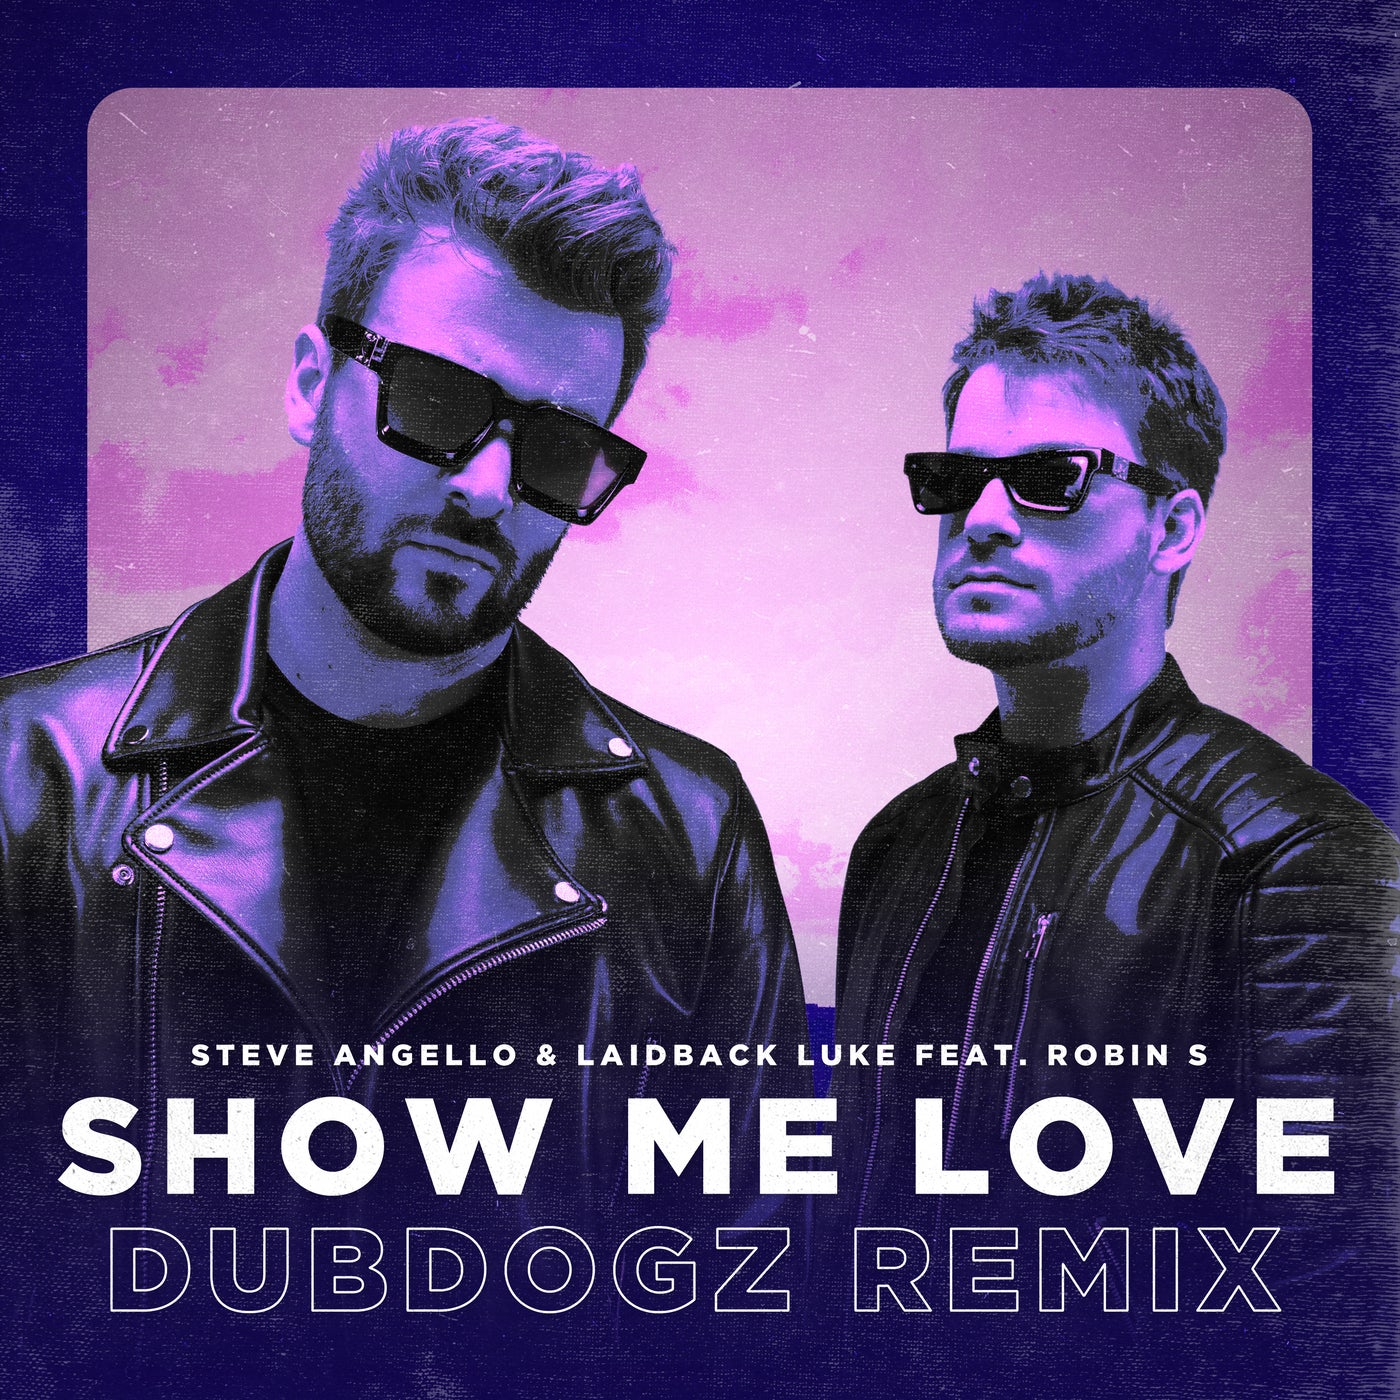 Show Me Love (Extended Mix) feat. Robin S (Dubdogz Remix)